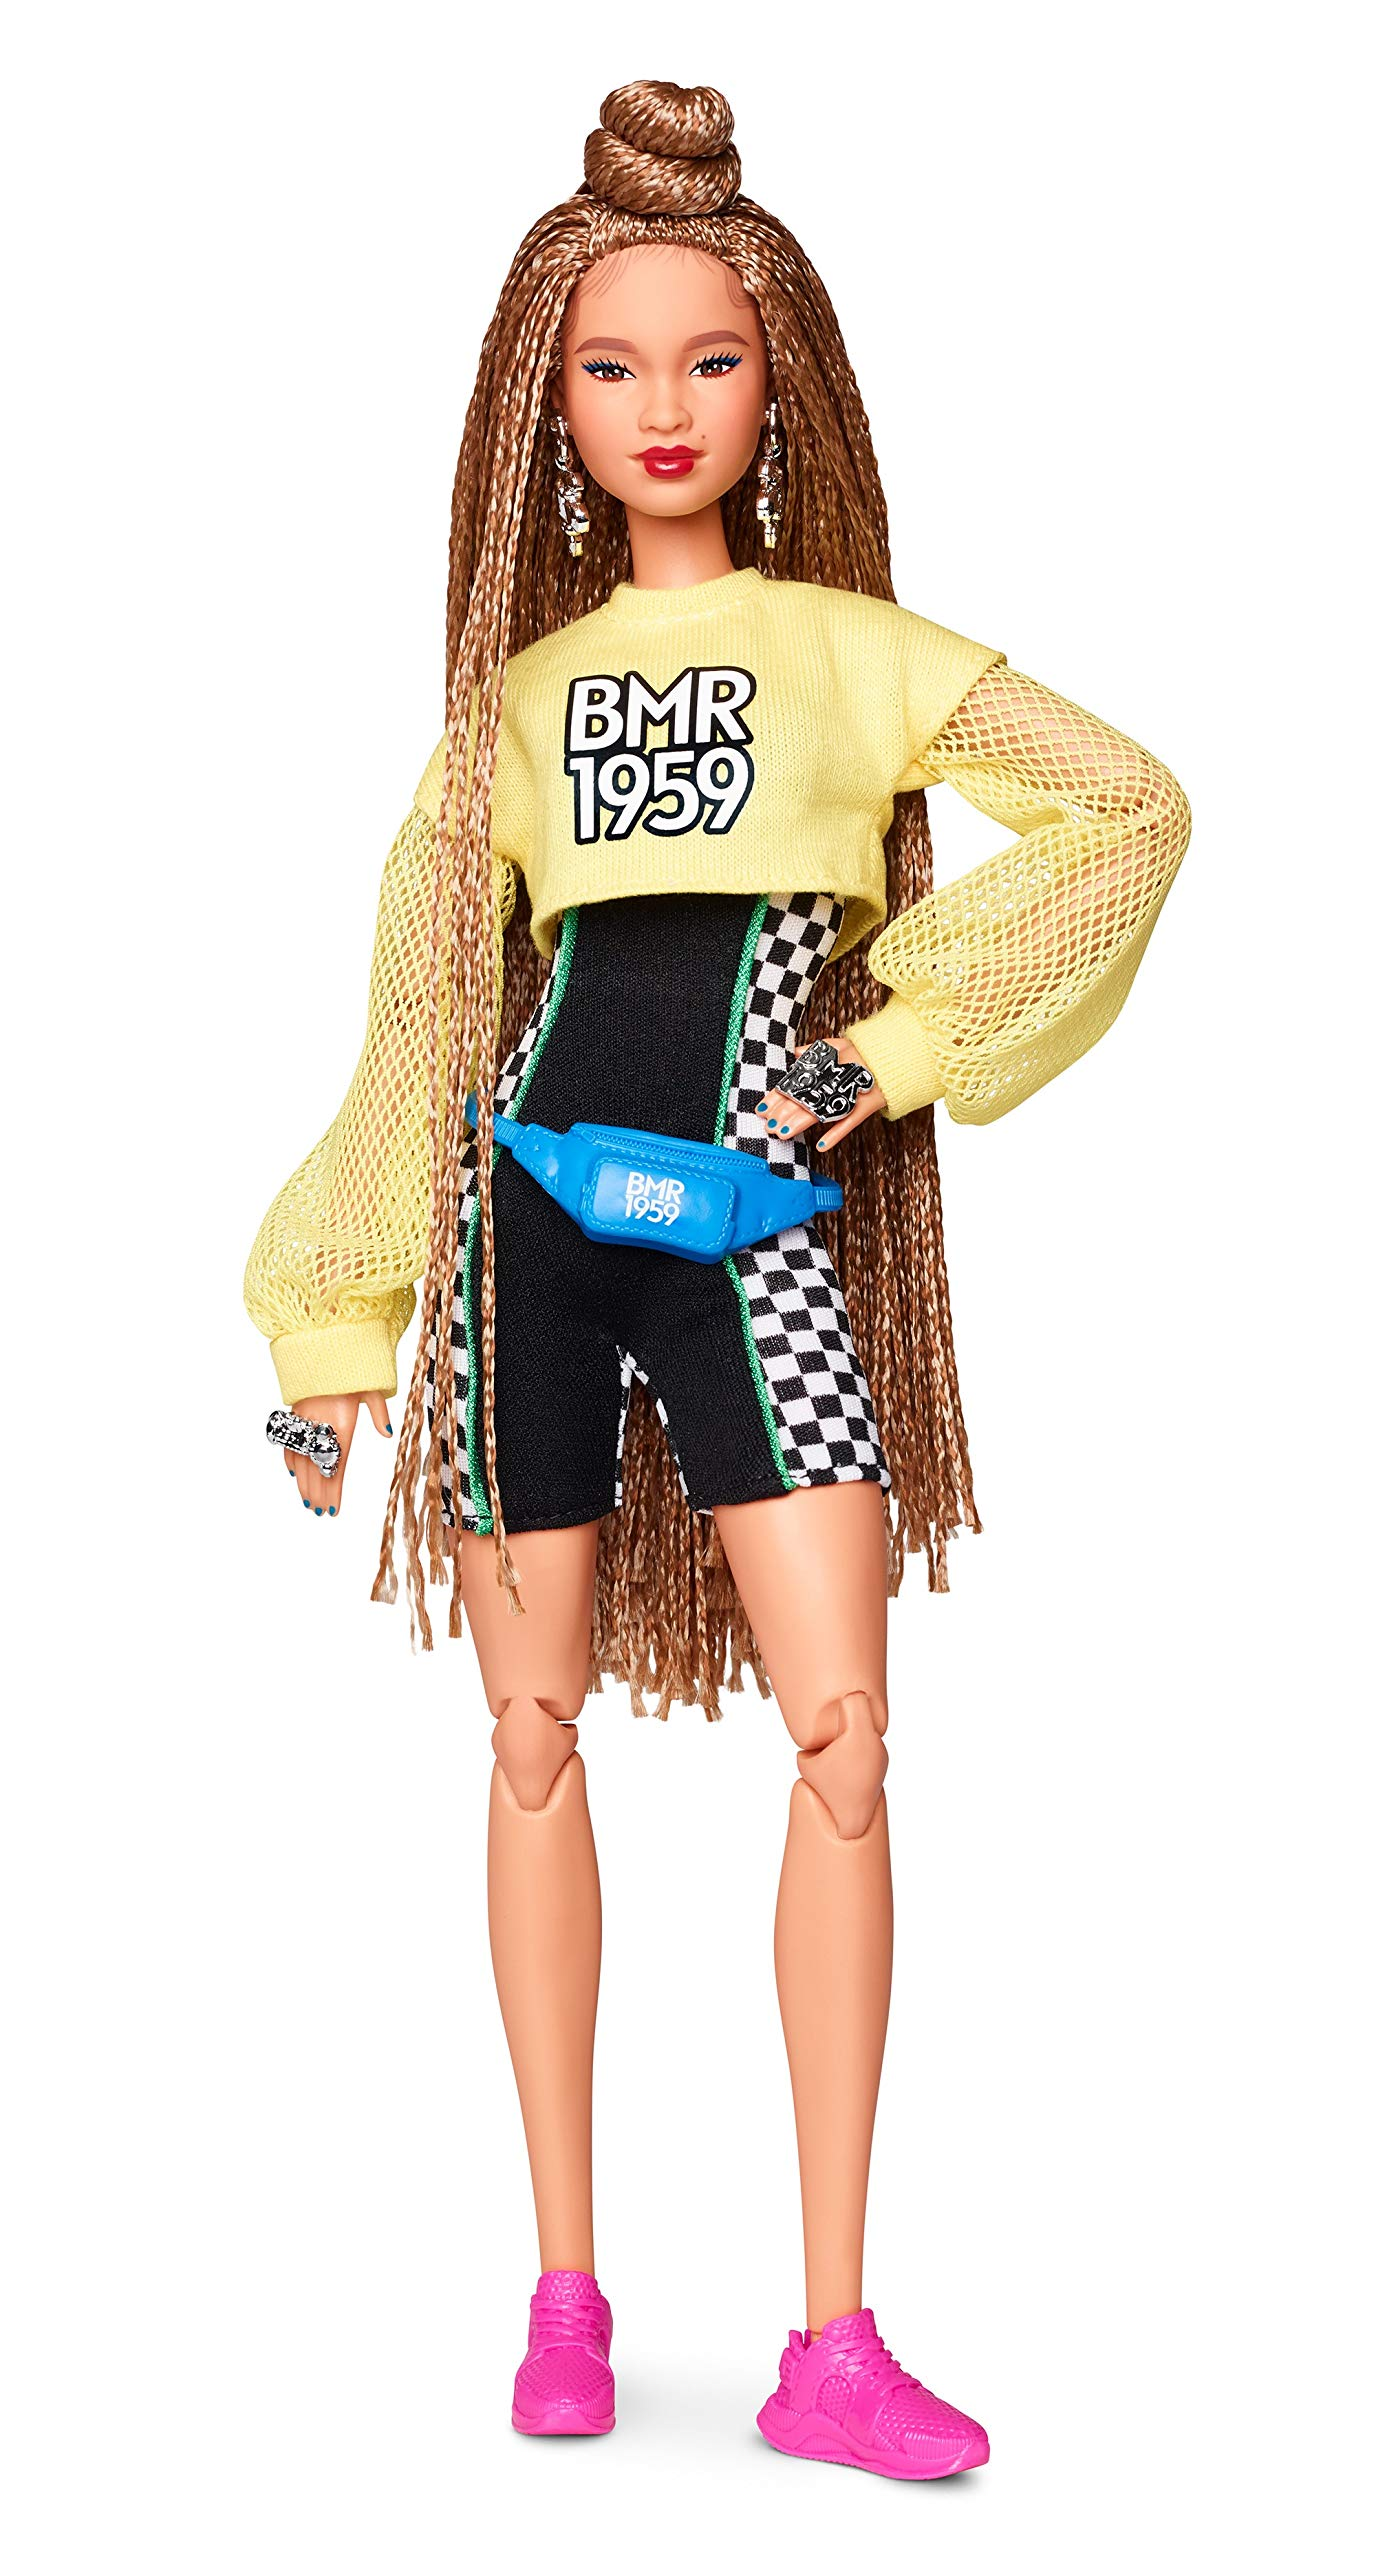 Barbie GHT91 BMR1959 Fully Poseable Fashion Doll with Braided Hair, Wearing Bike Shorts Romper and Cropped Sweatshirt with Accessories and Doll Stand